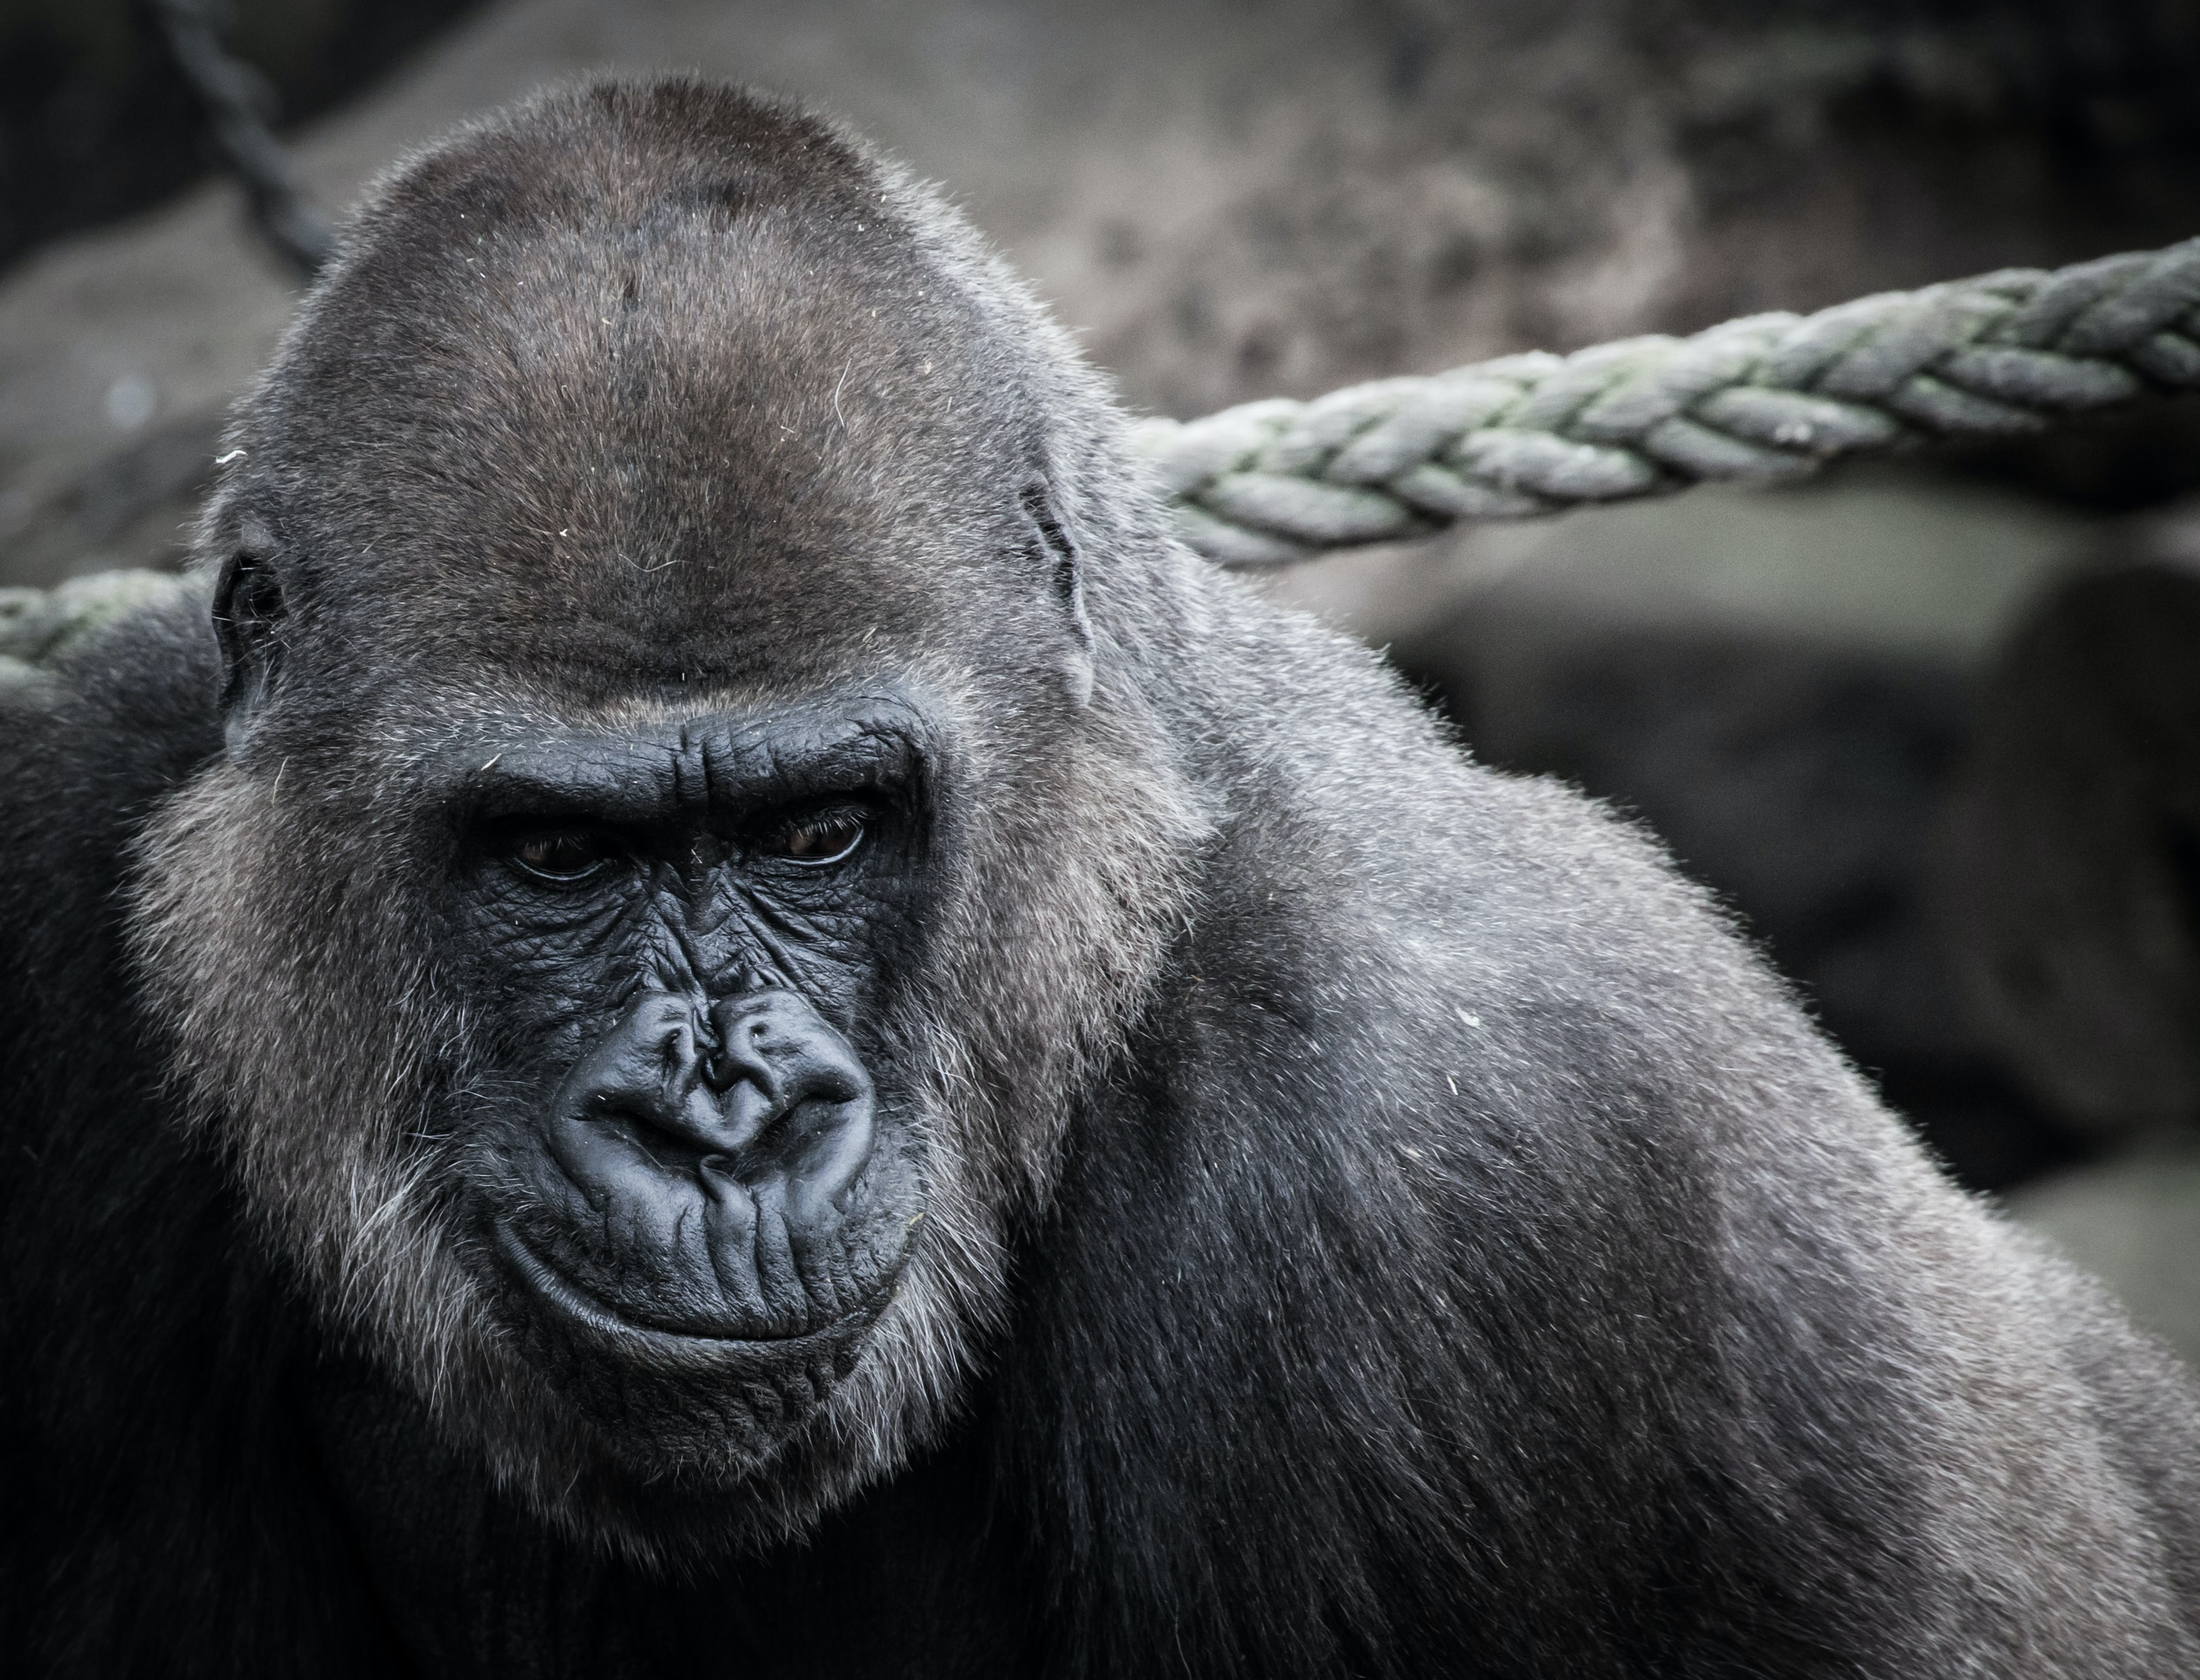 black ape beside gray rope